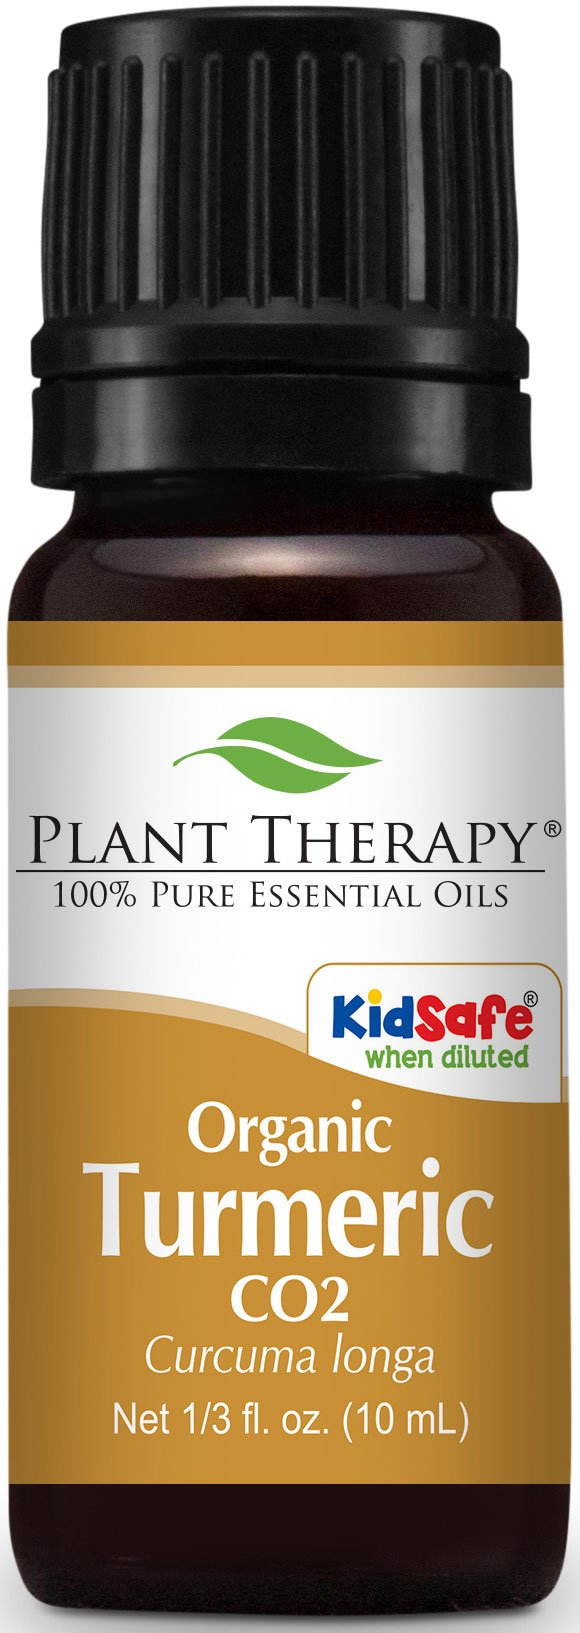 Plant Therapy USDA Certified Organic Turmeric CO2 Essential Oil. 10 ml (1/3 oz). 100% Pure, Undiluted, Therapeutic Grade. (Pack of 12)